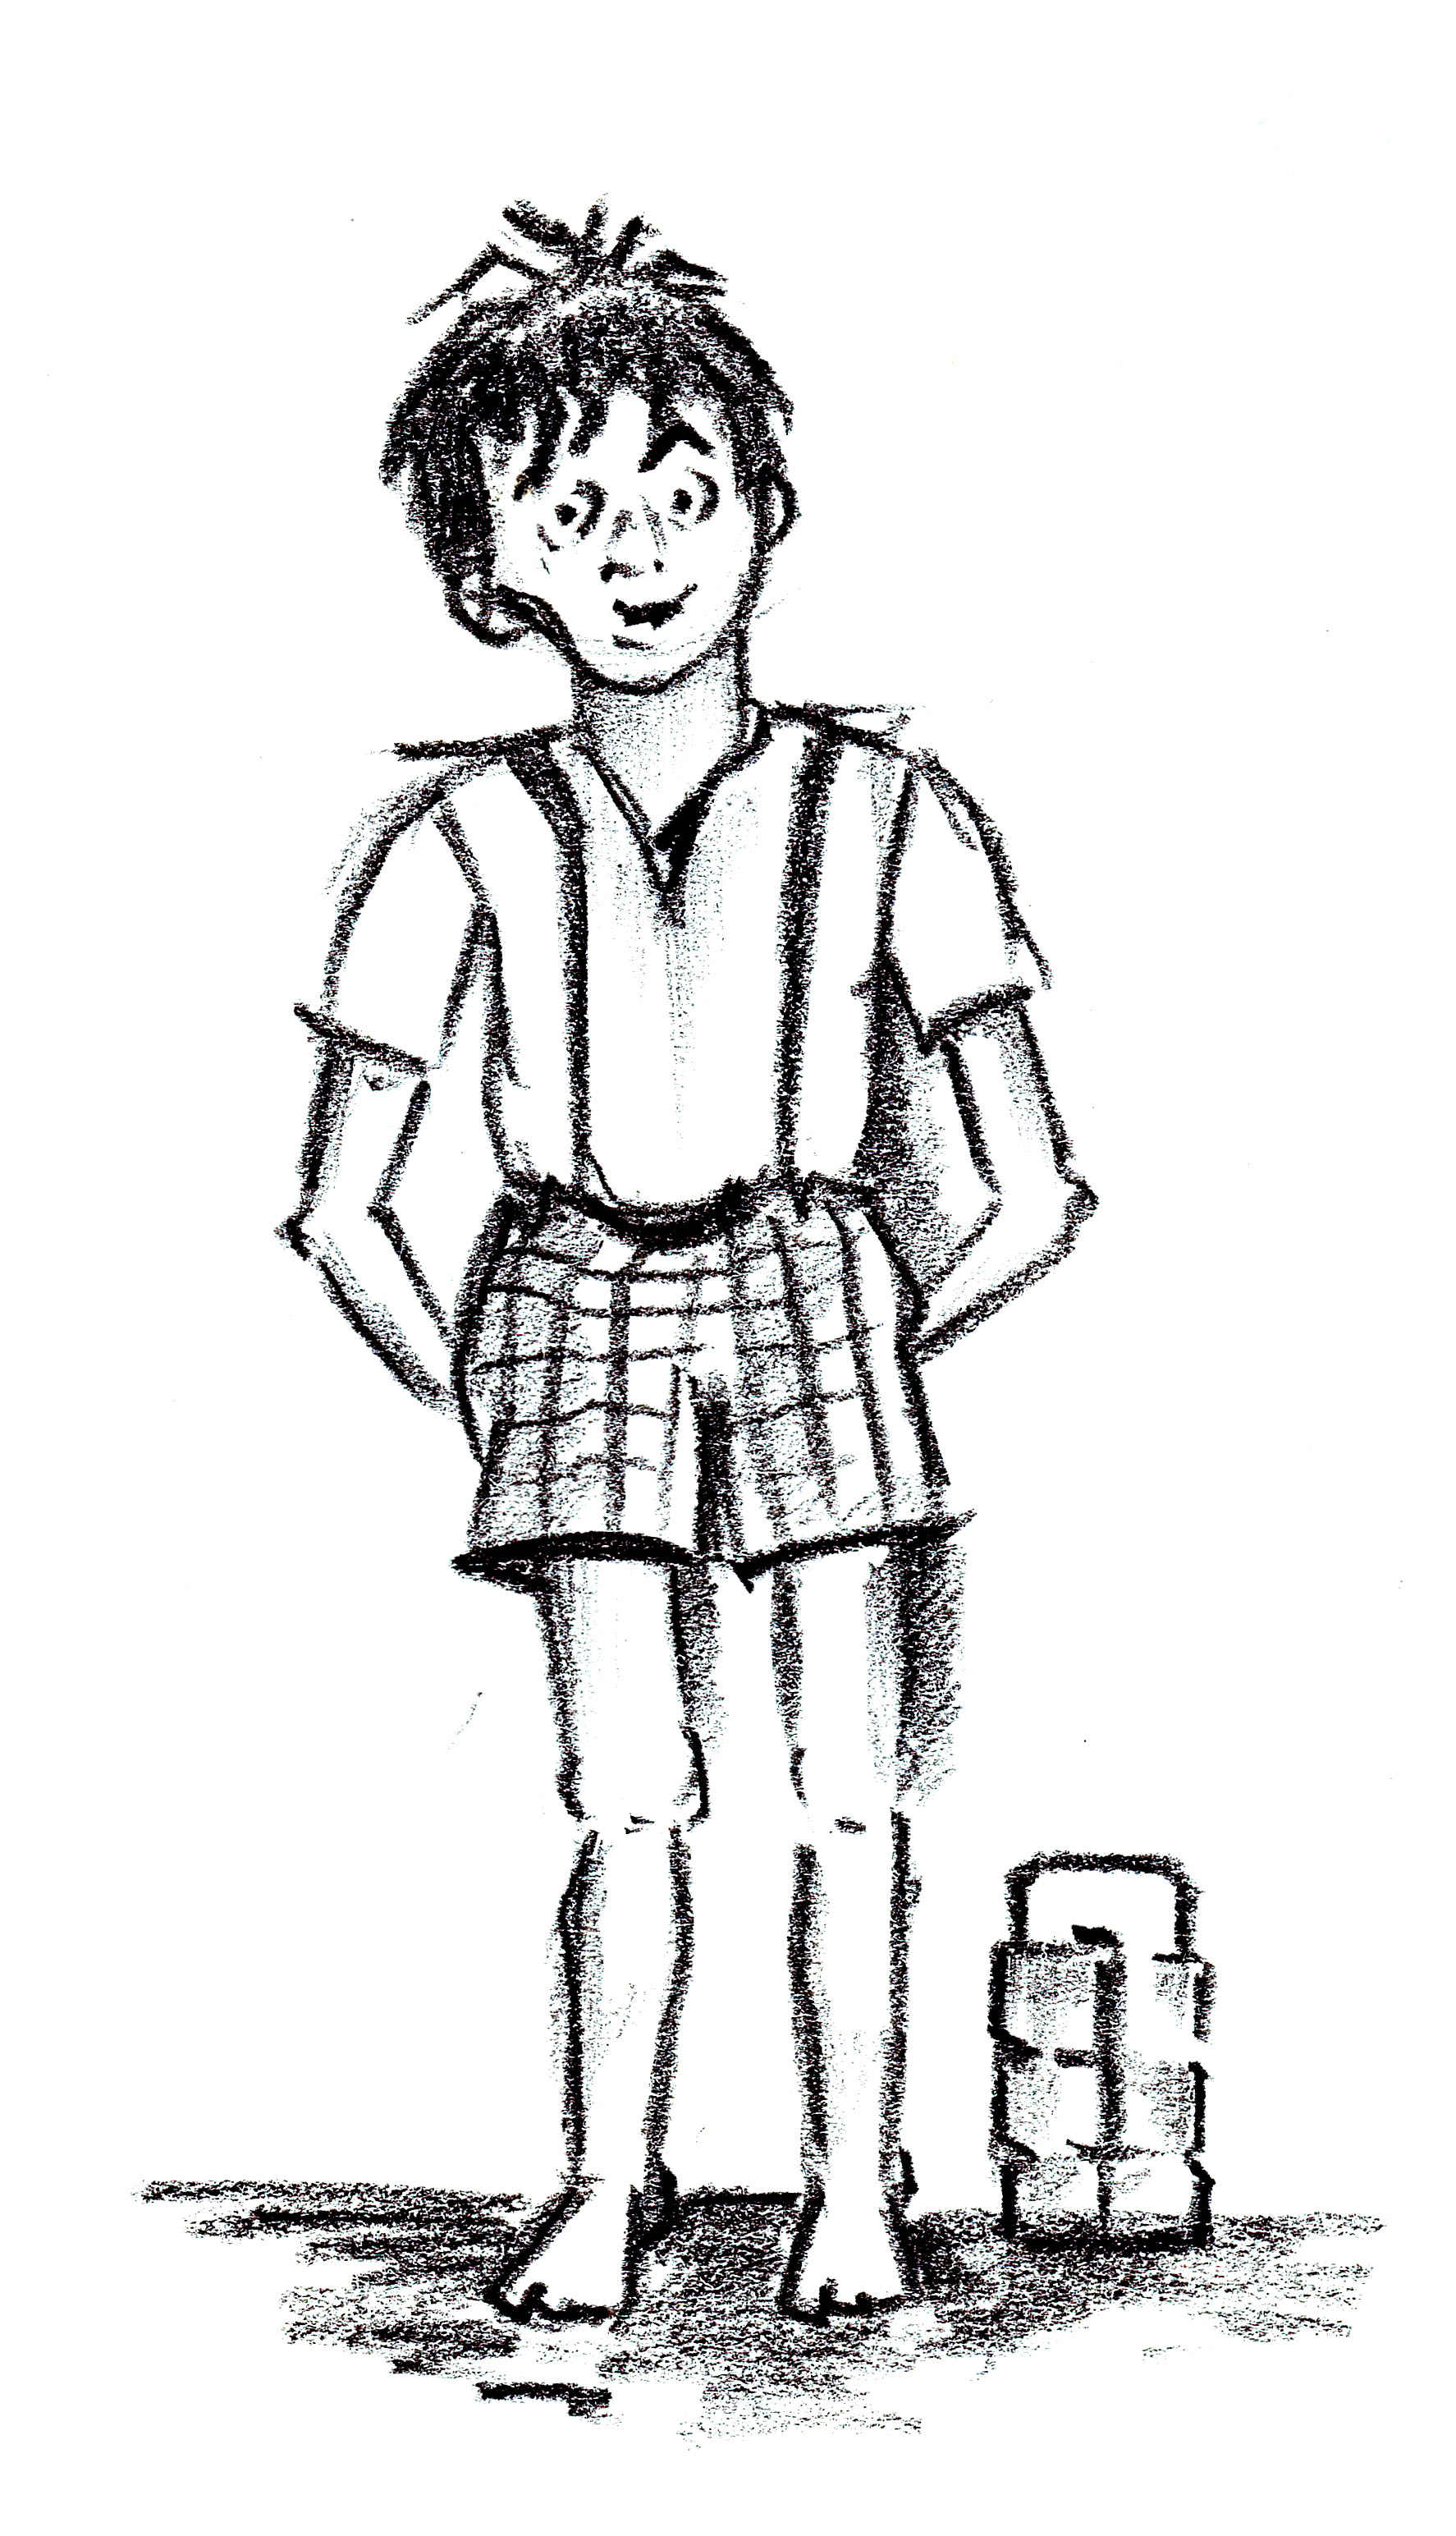 1774x3089 Pencil Drawing For Child Labour Child Labour Pencil Drawing Hd